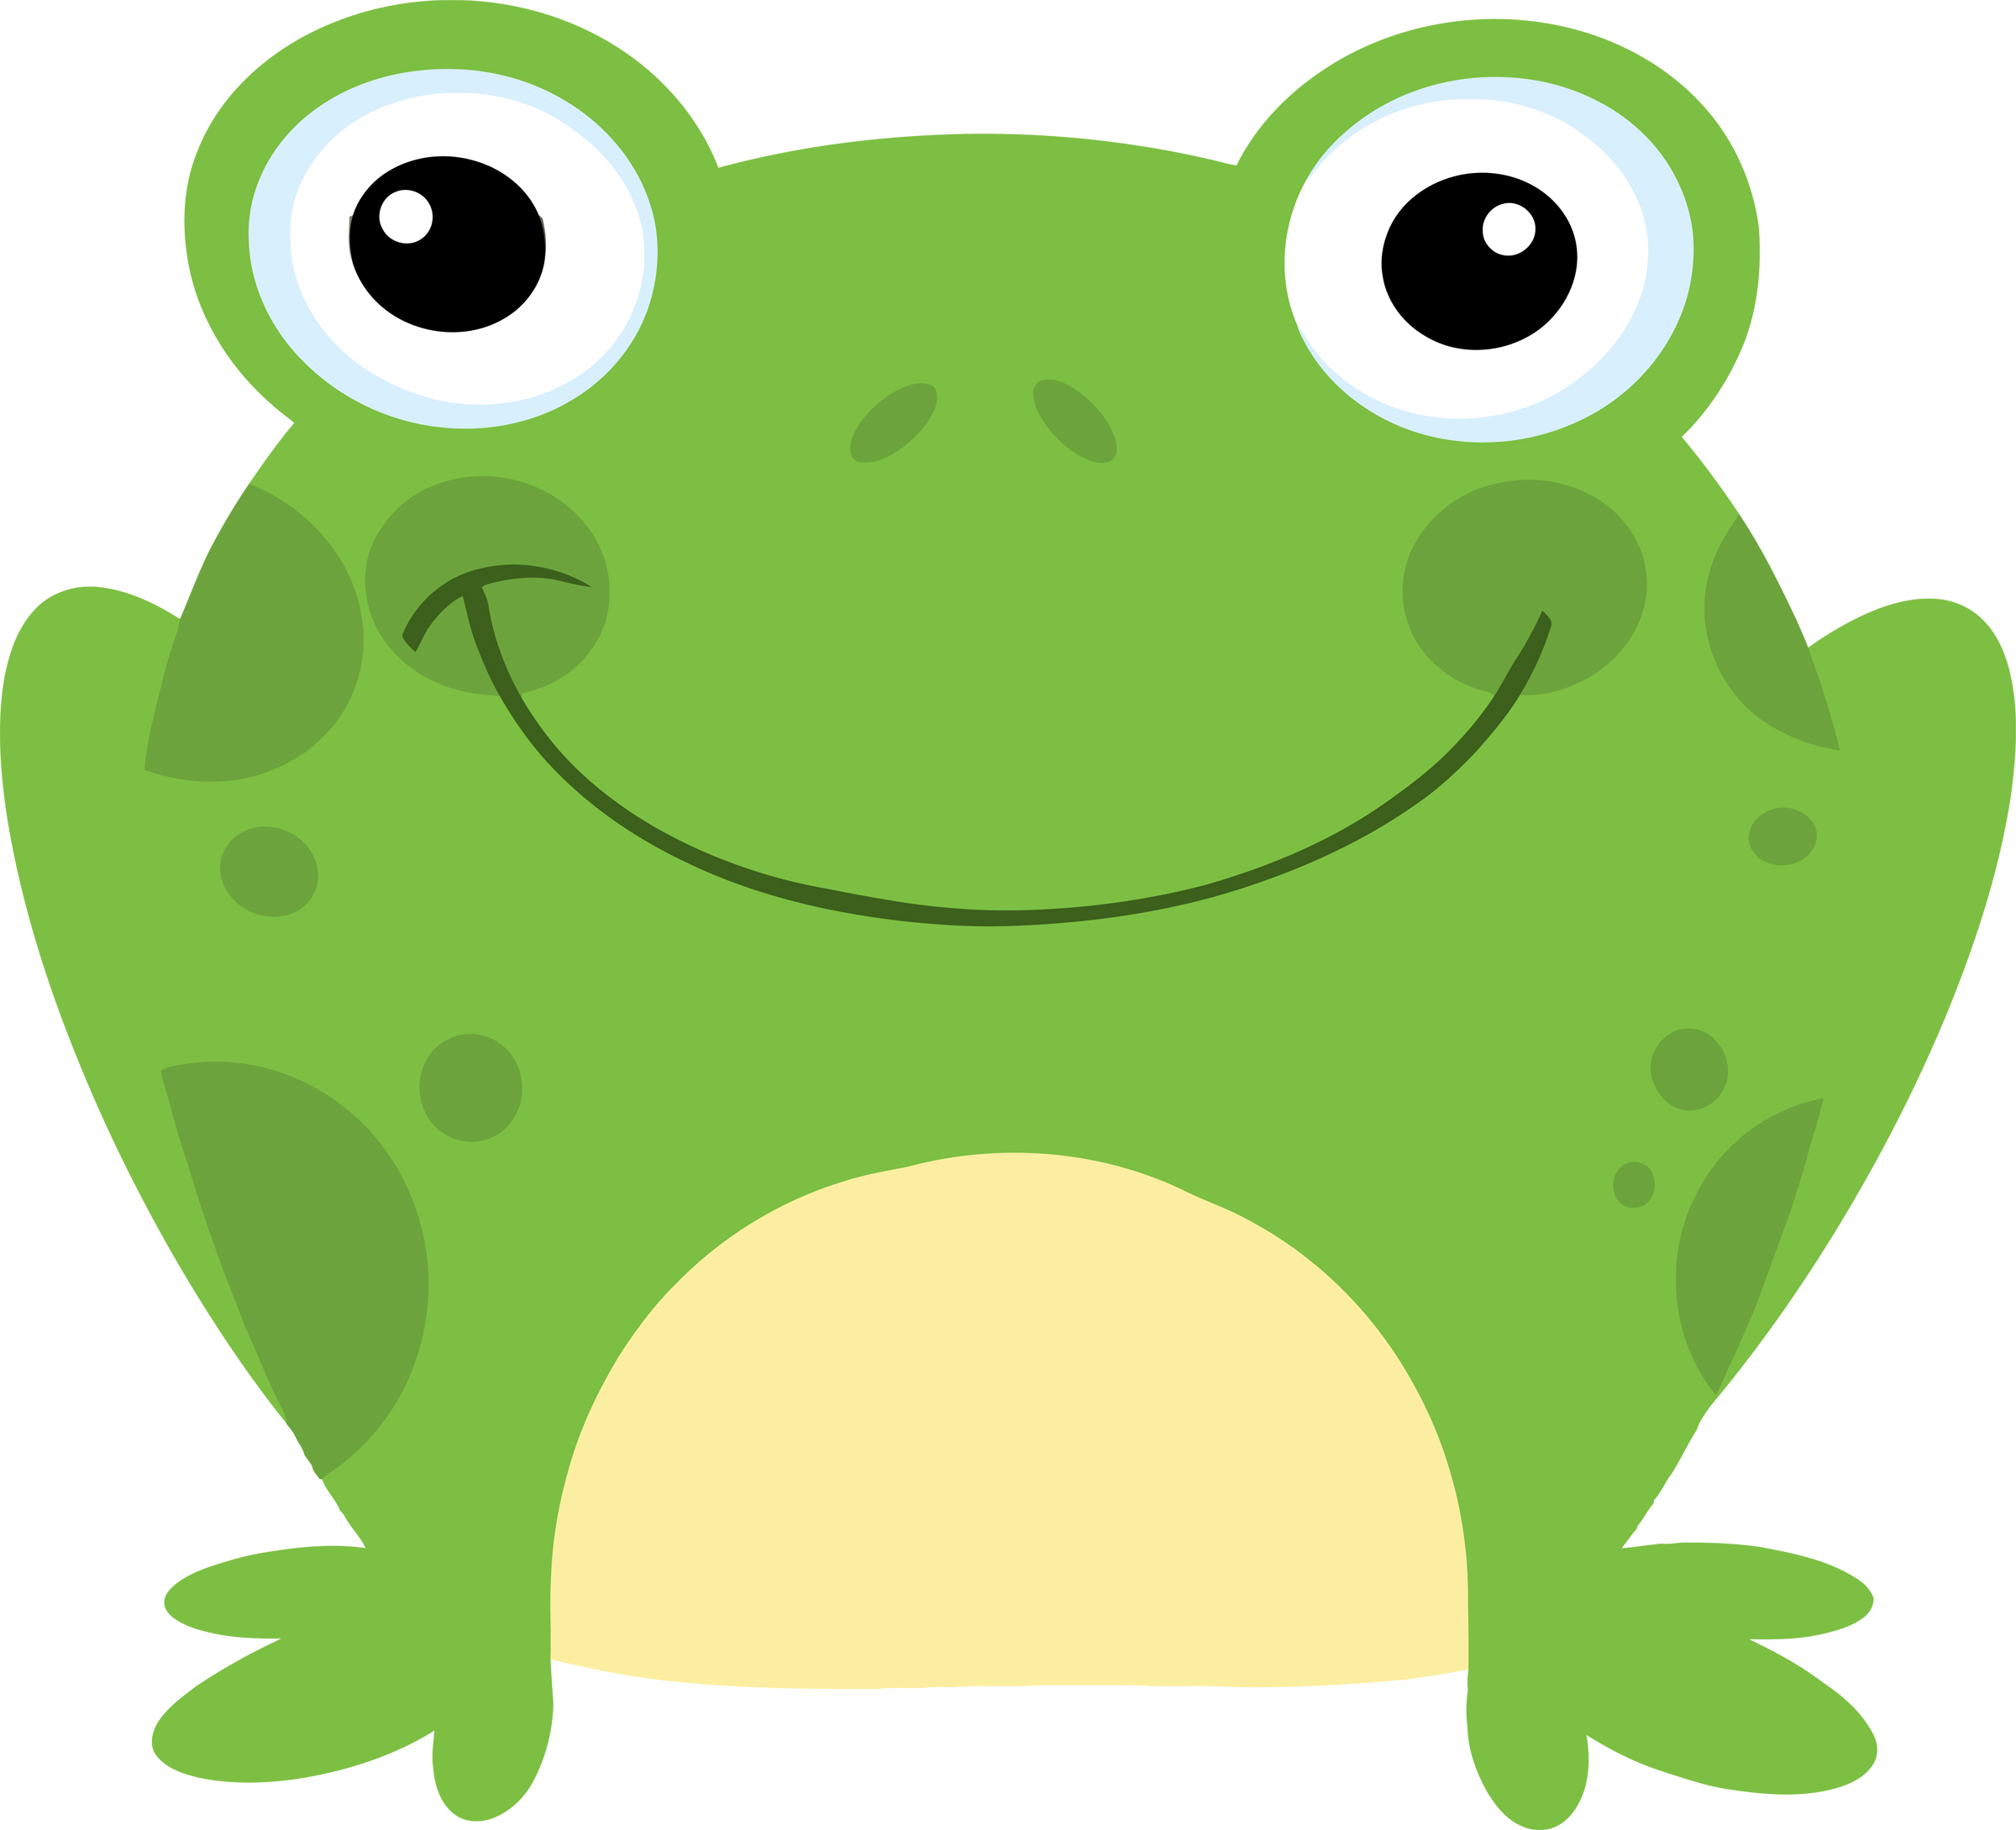 Wizard clipart toad Art illustrations pictures Free clipartix